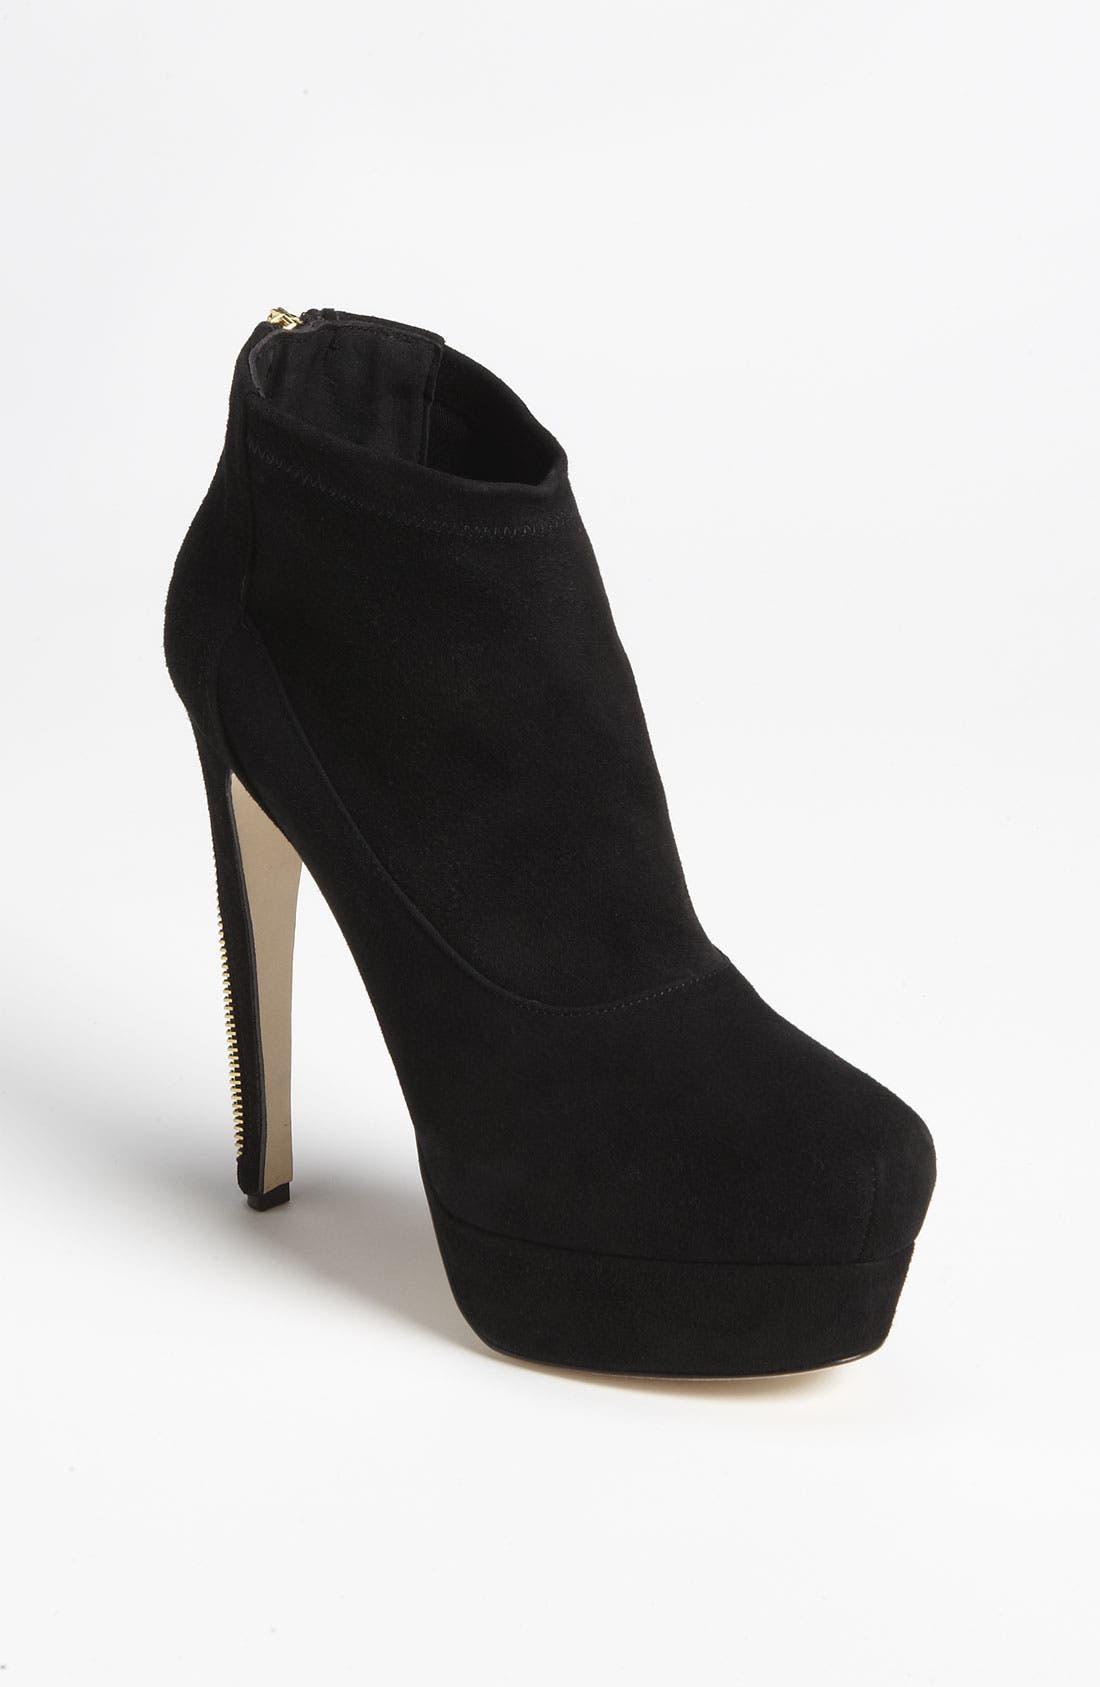 Alternate Image 1 Selected - Brian Atwood 'Visconti' Demi Bootie